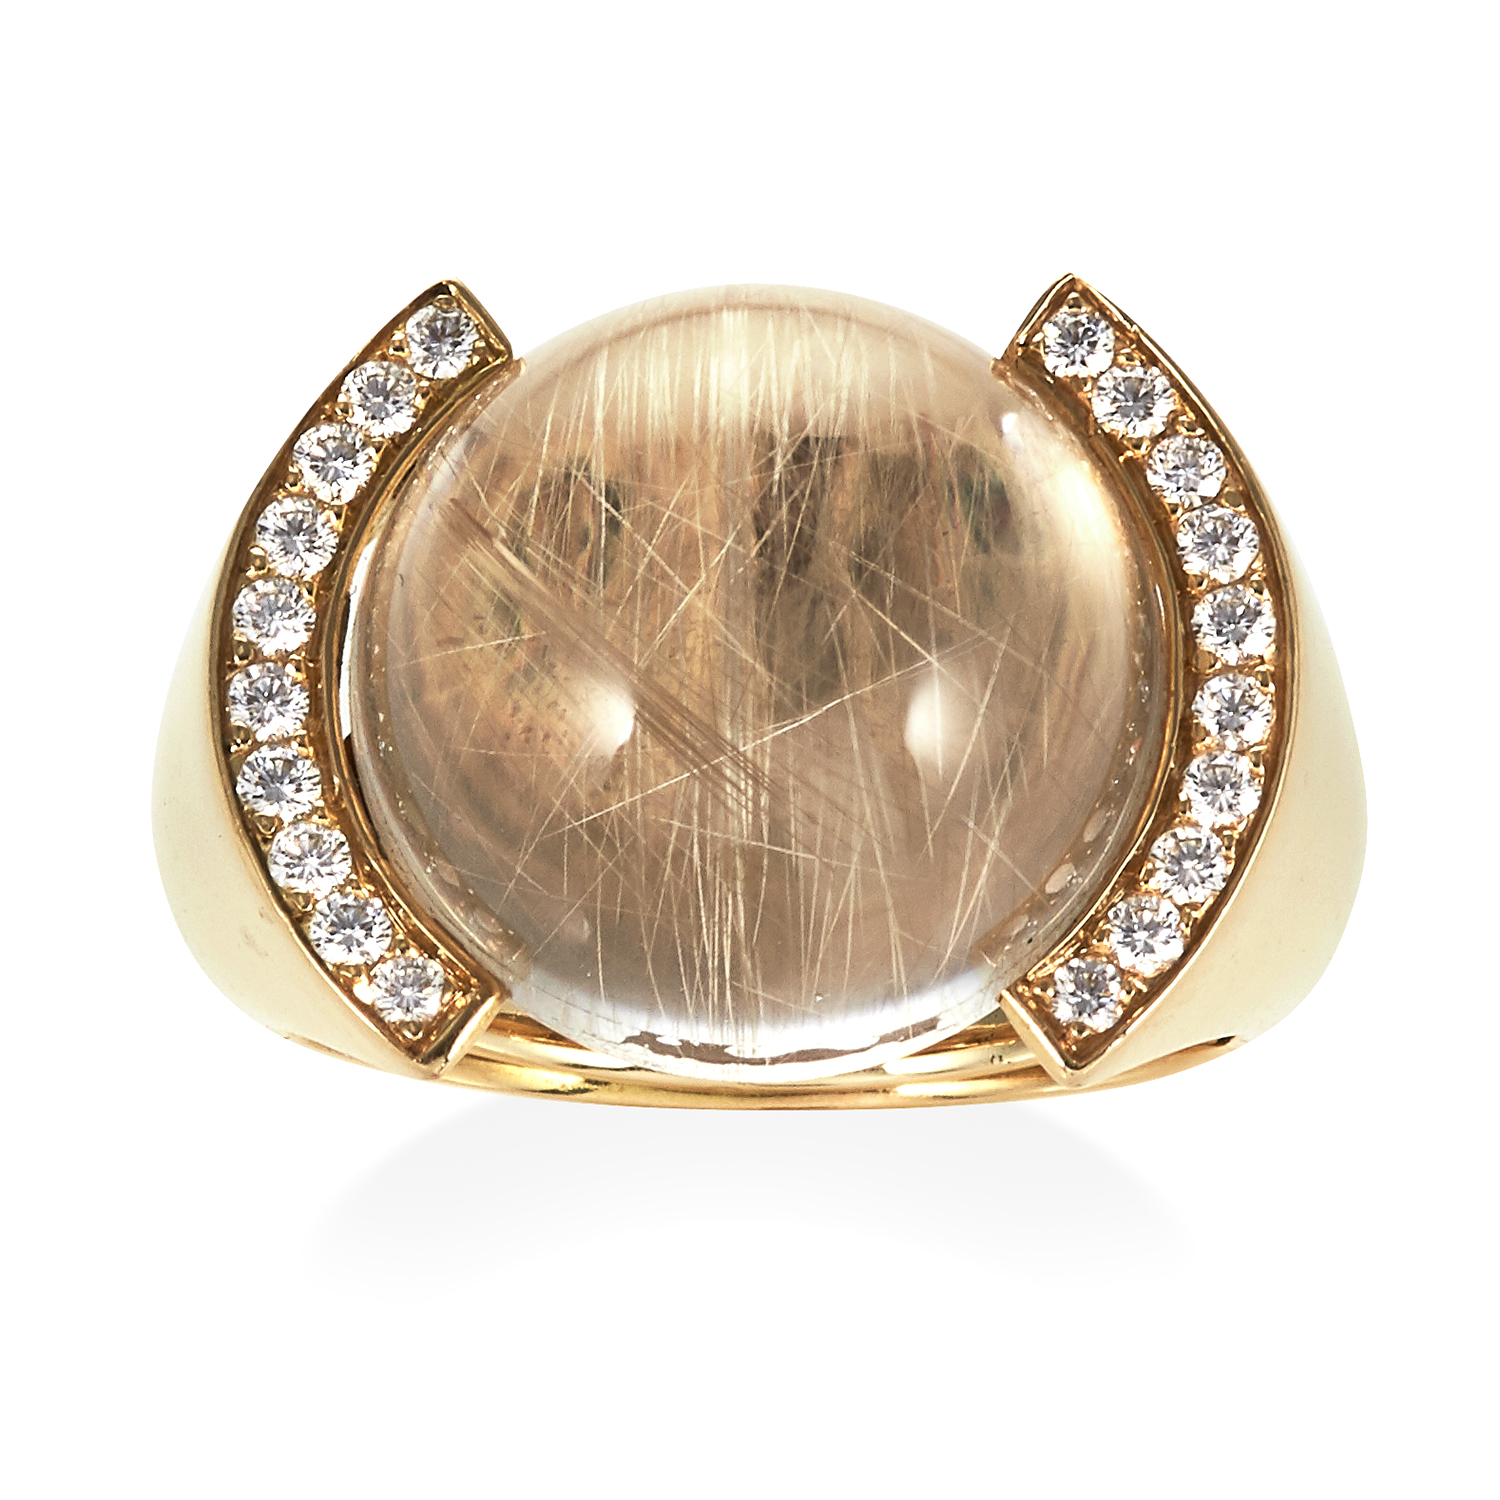 A VINTAGE RUTILE QUARTZ AND DIAMOND DRESS RING, CARTIER in 18ct yellow gold, set with a central